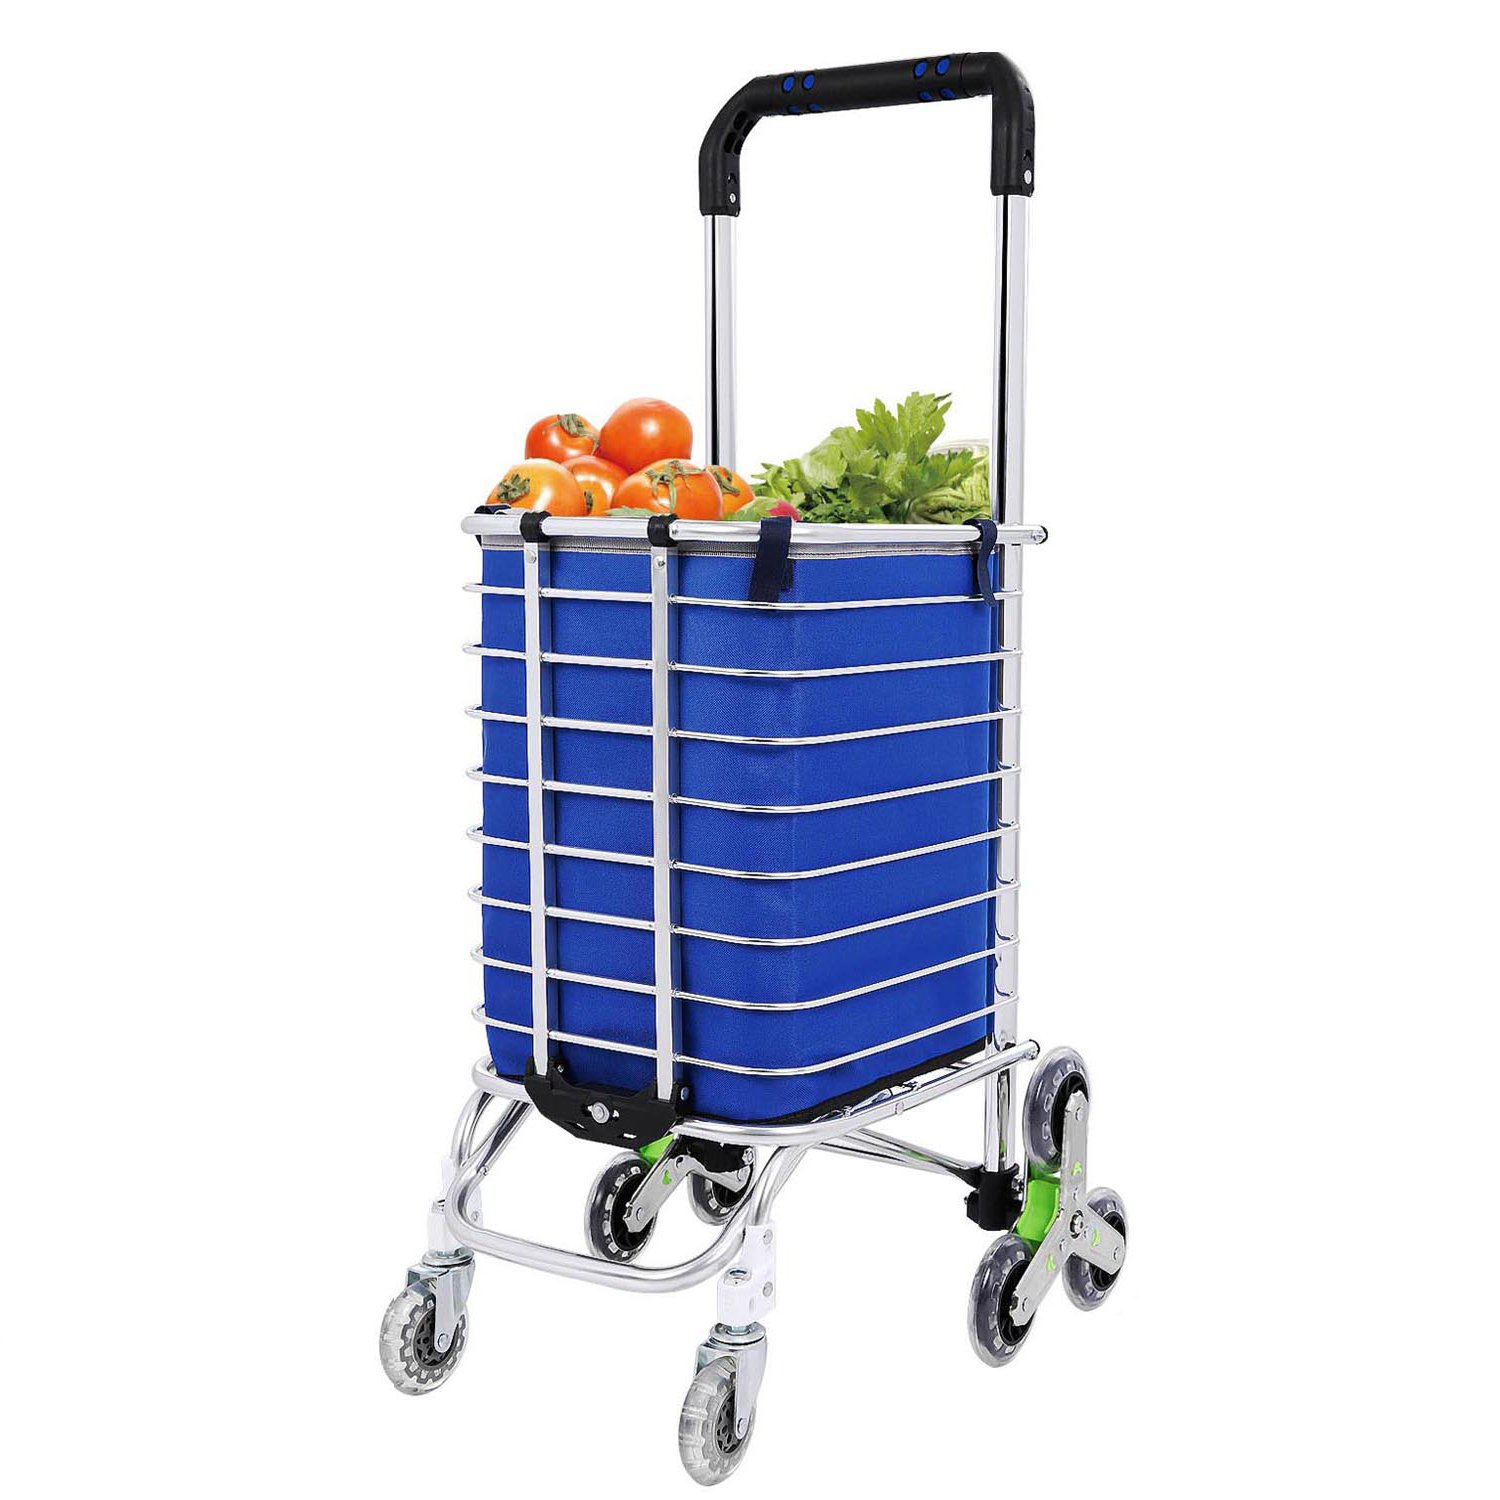 Anfan Folding Shopping Cart Heavy Duty Stair Climbing Grocery Utility Cart with Rolling Swivel wheels and Removable Waterproof Canvas Bag